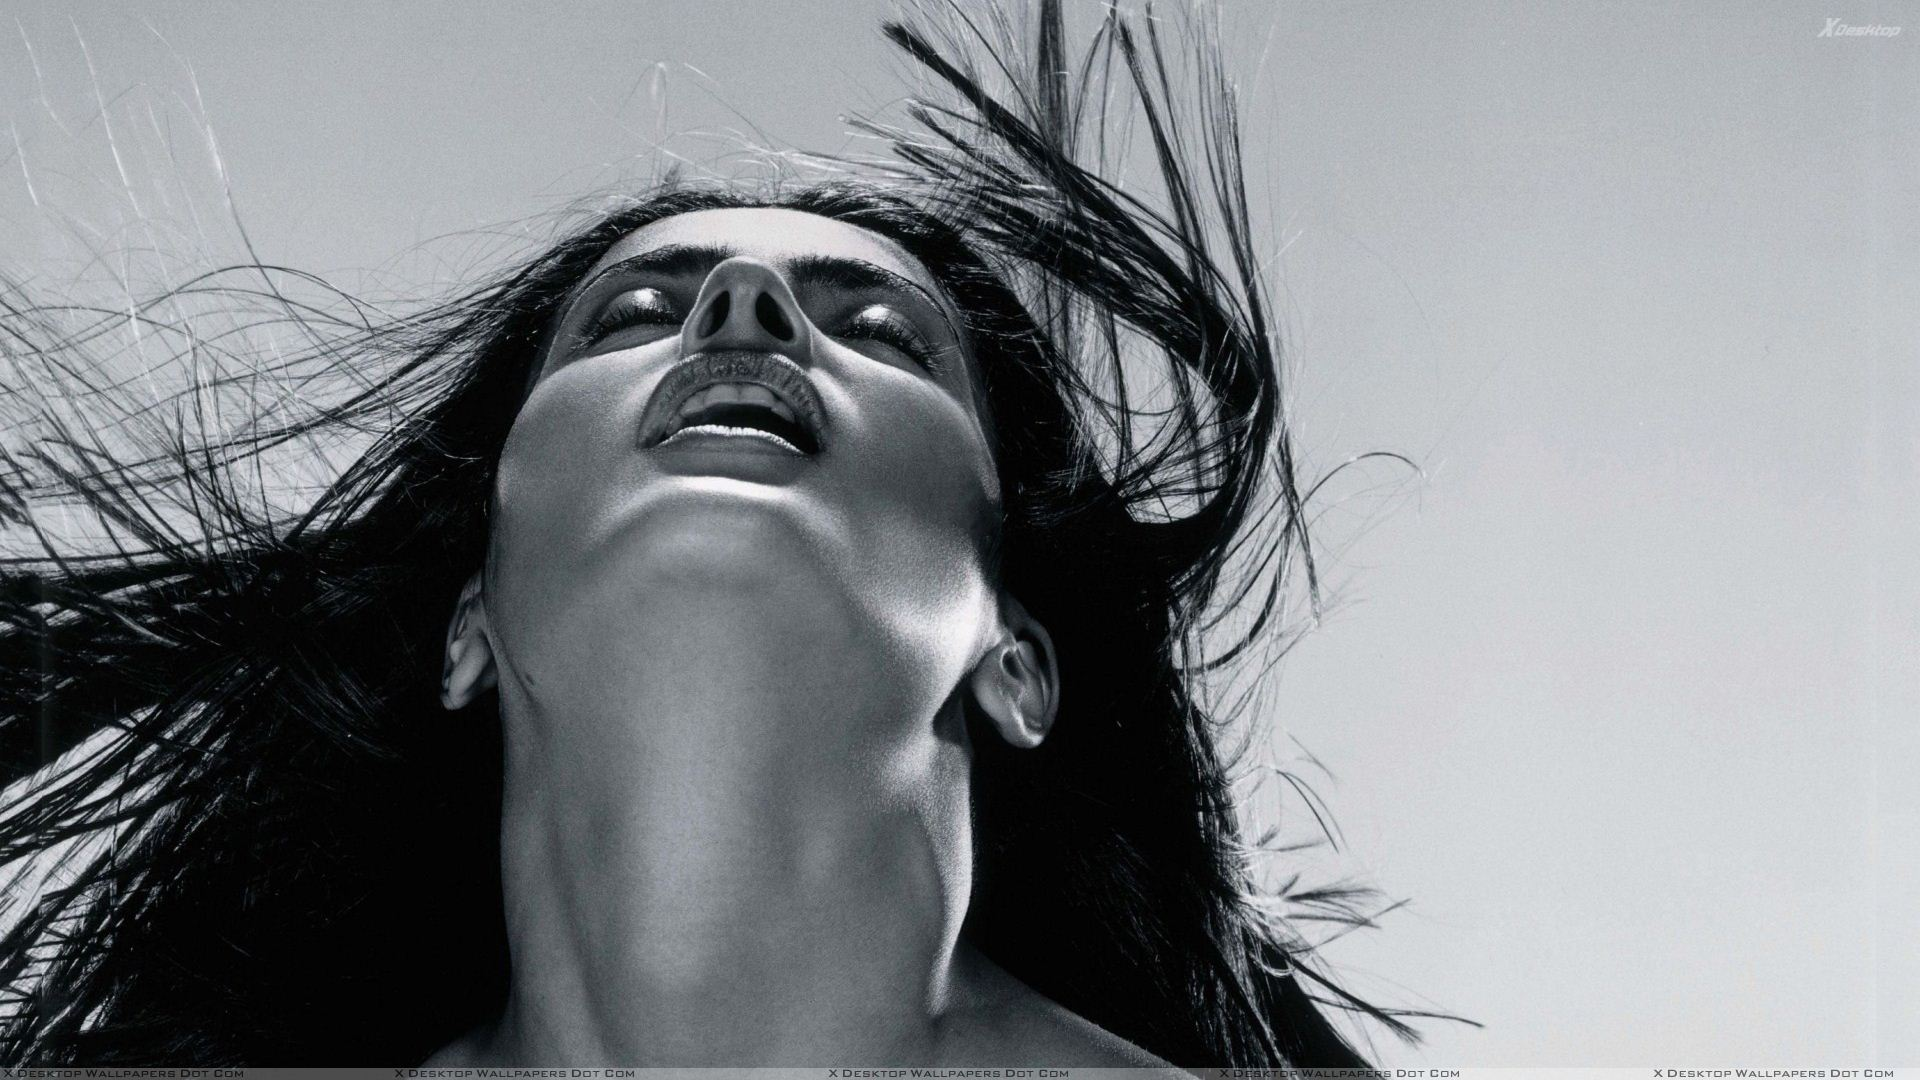 You are viewing wallpaper titled salma hayek black n white